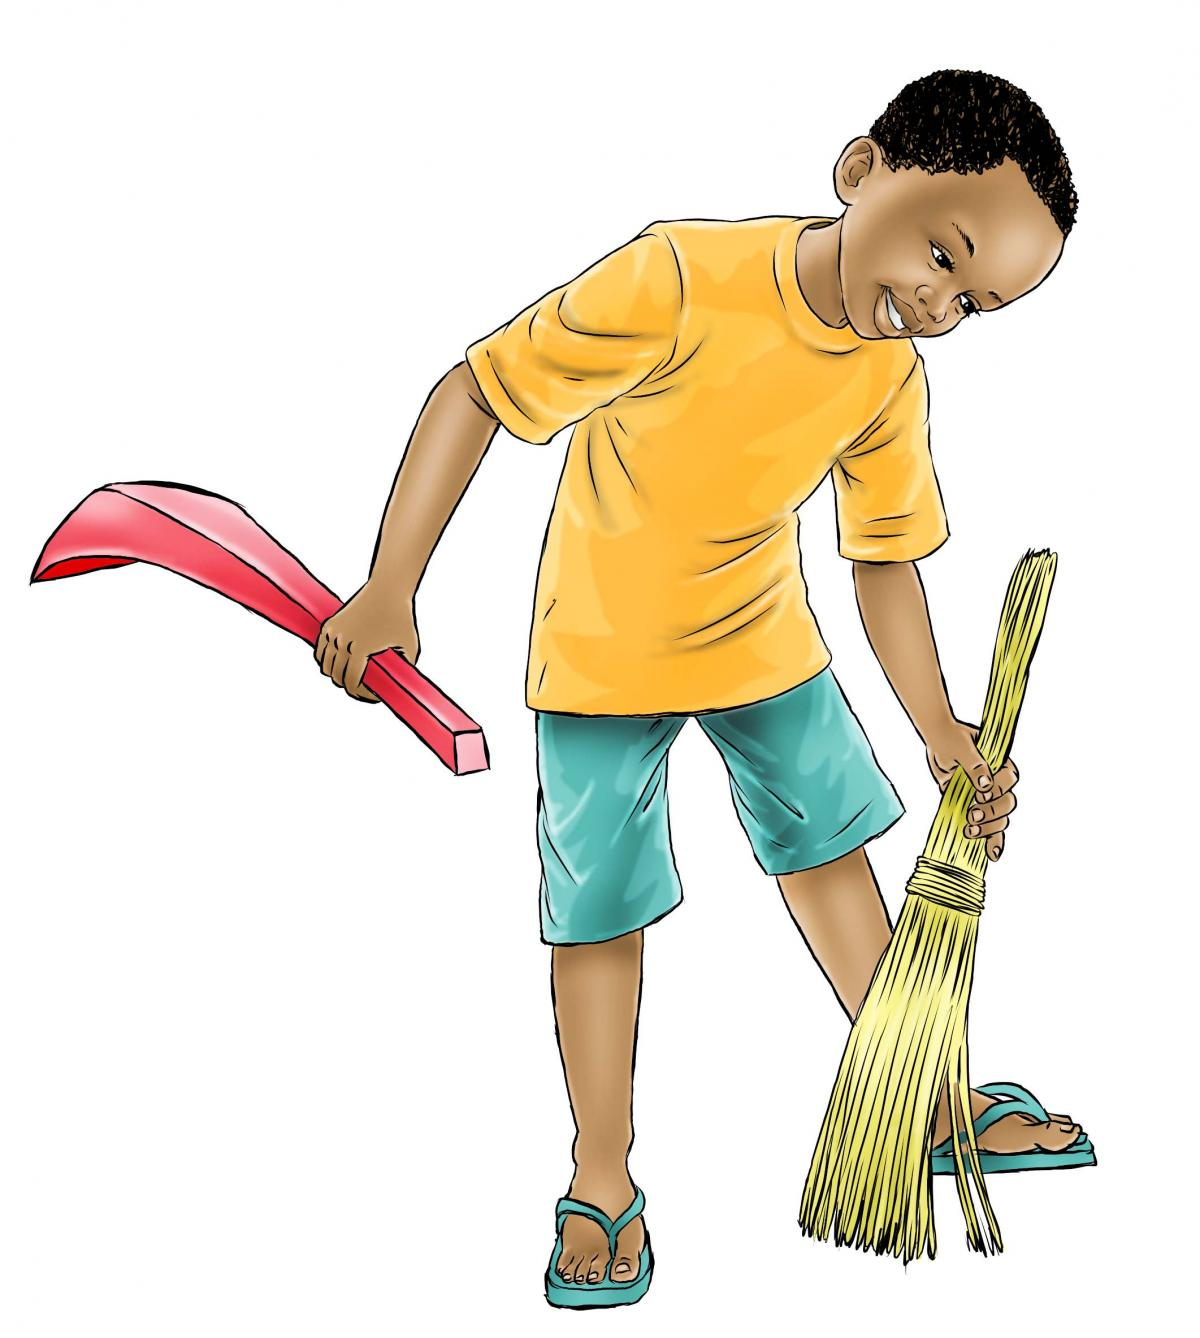 Sanitation - Boy sweeping - 03 - Nigeria